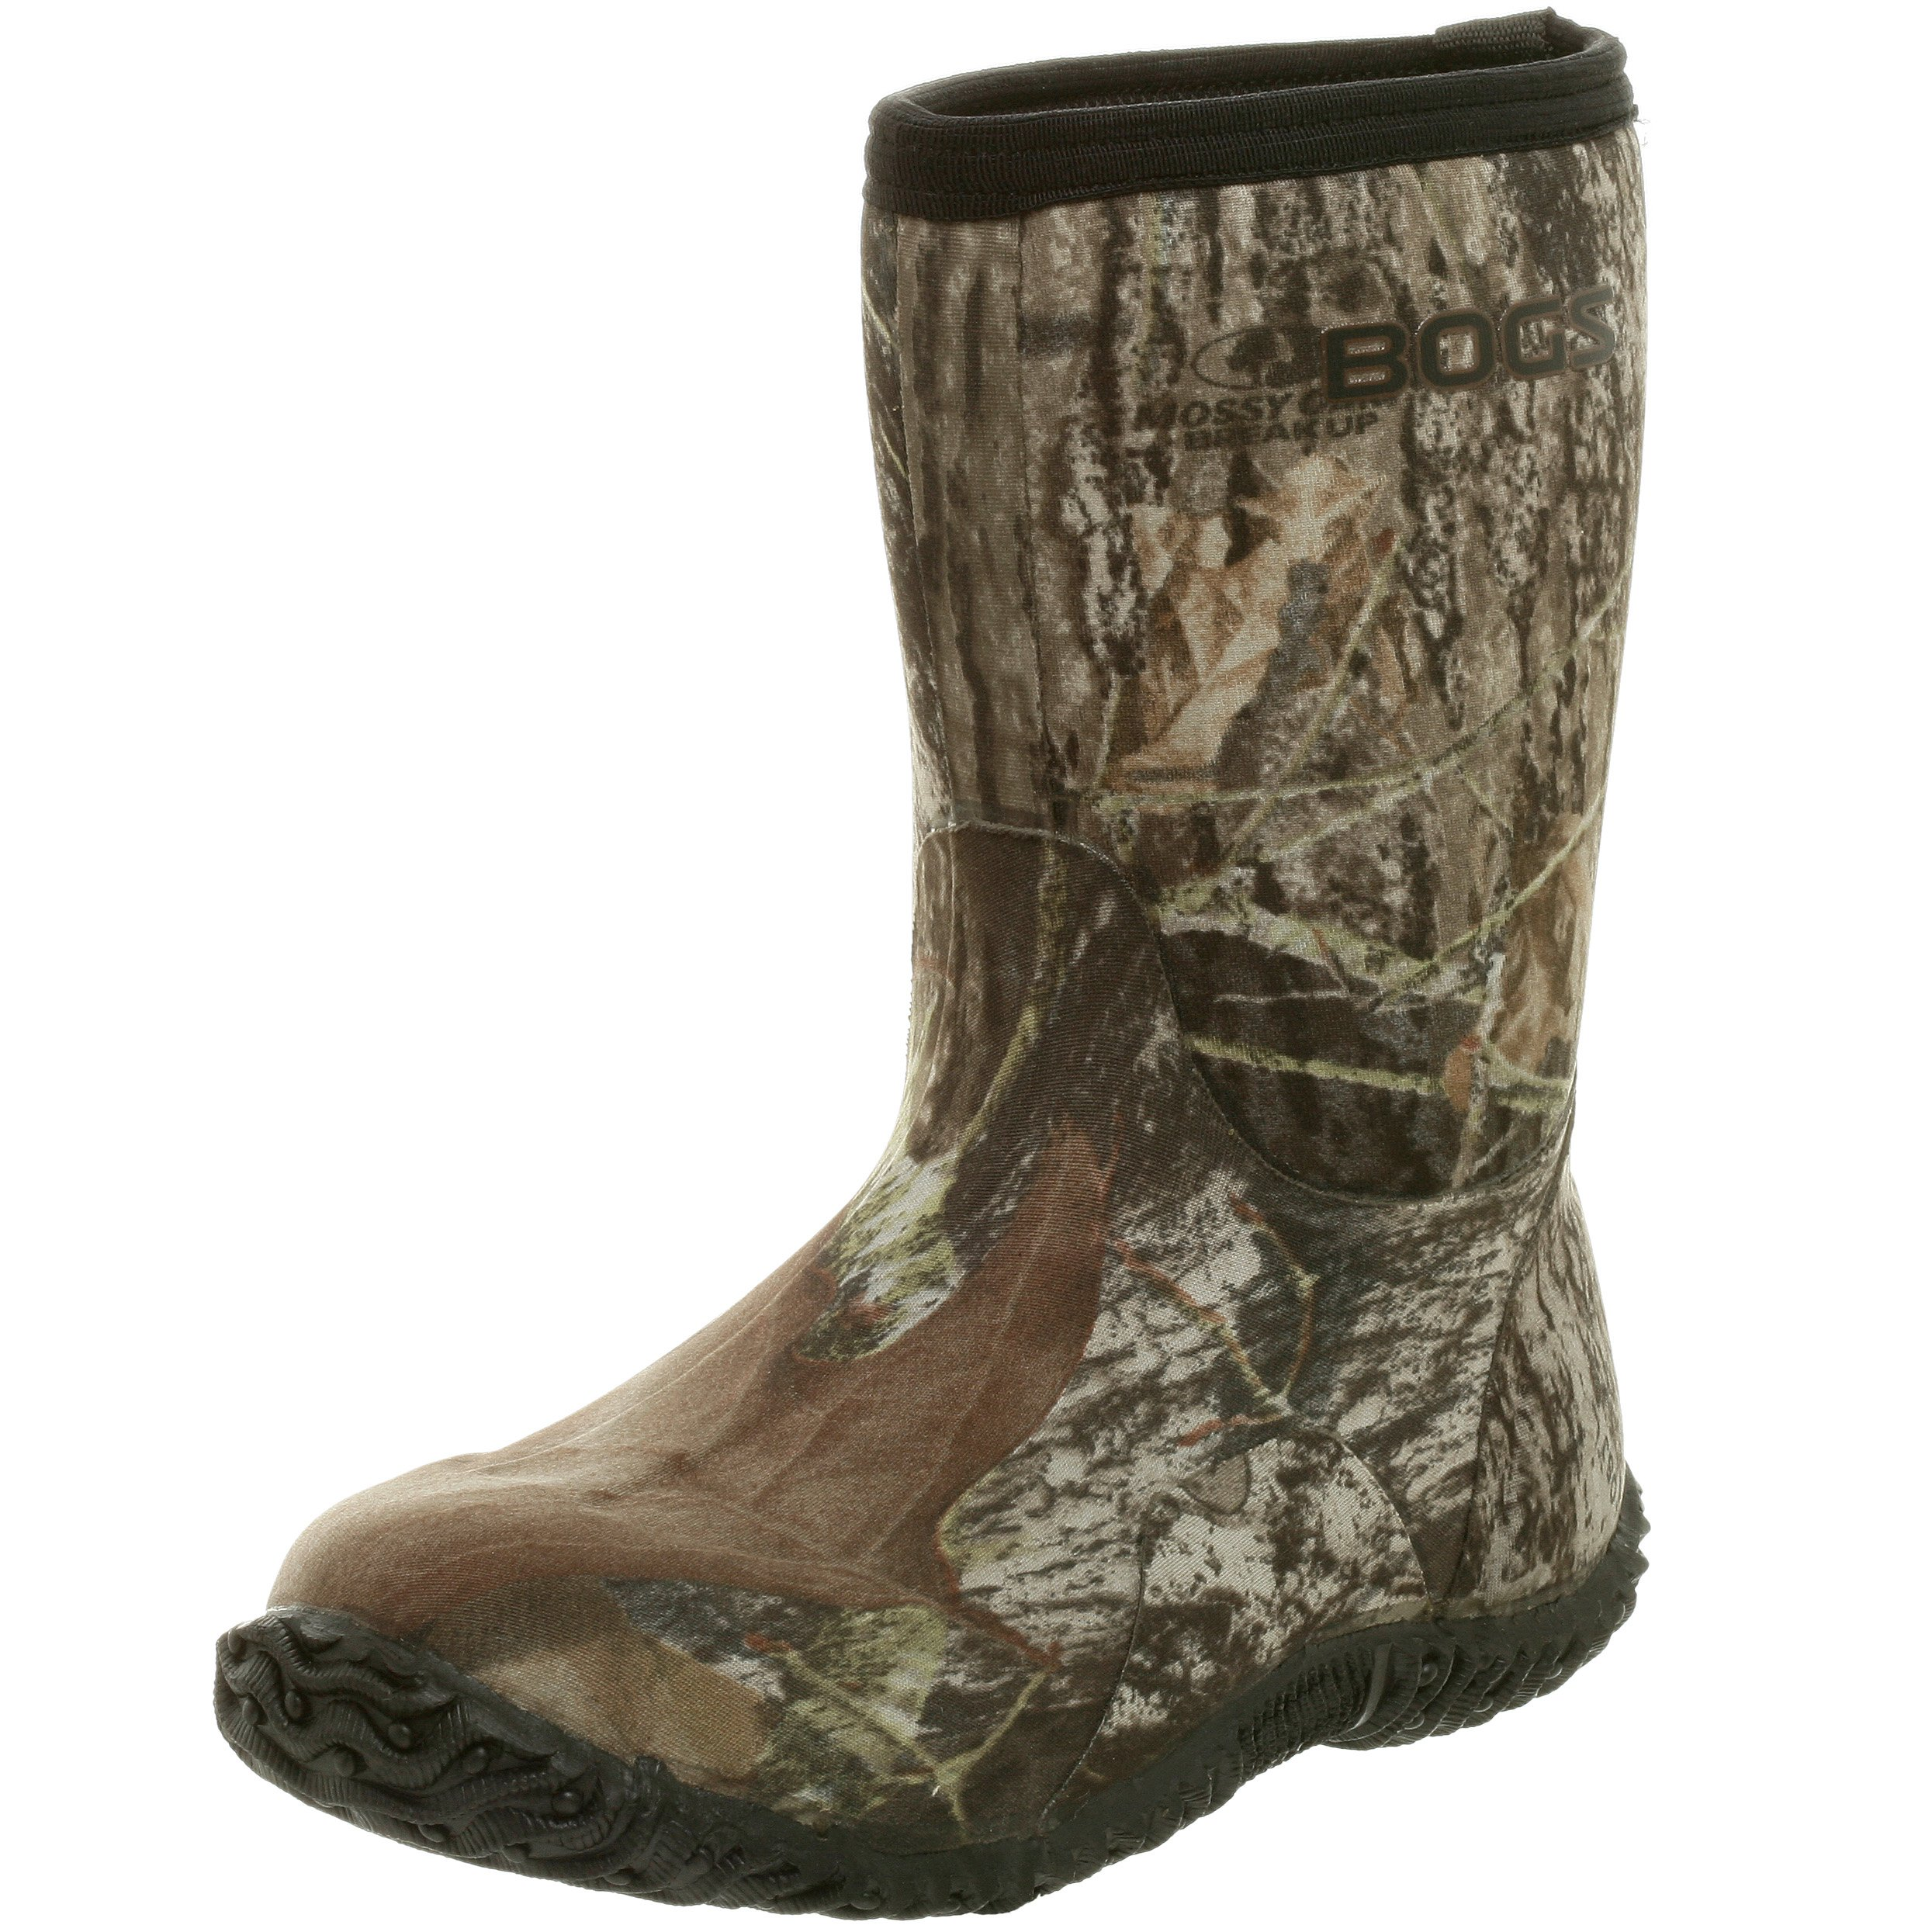 Bogs Classic Mid Waterproof Insulated Rain Boot (Toddler/Little Kid/Big Kid),  Mossy Oak, 9 M US Toddler